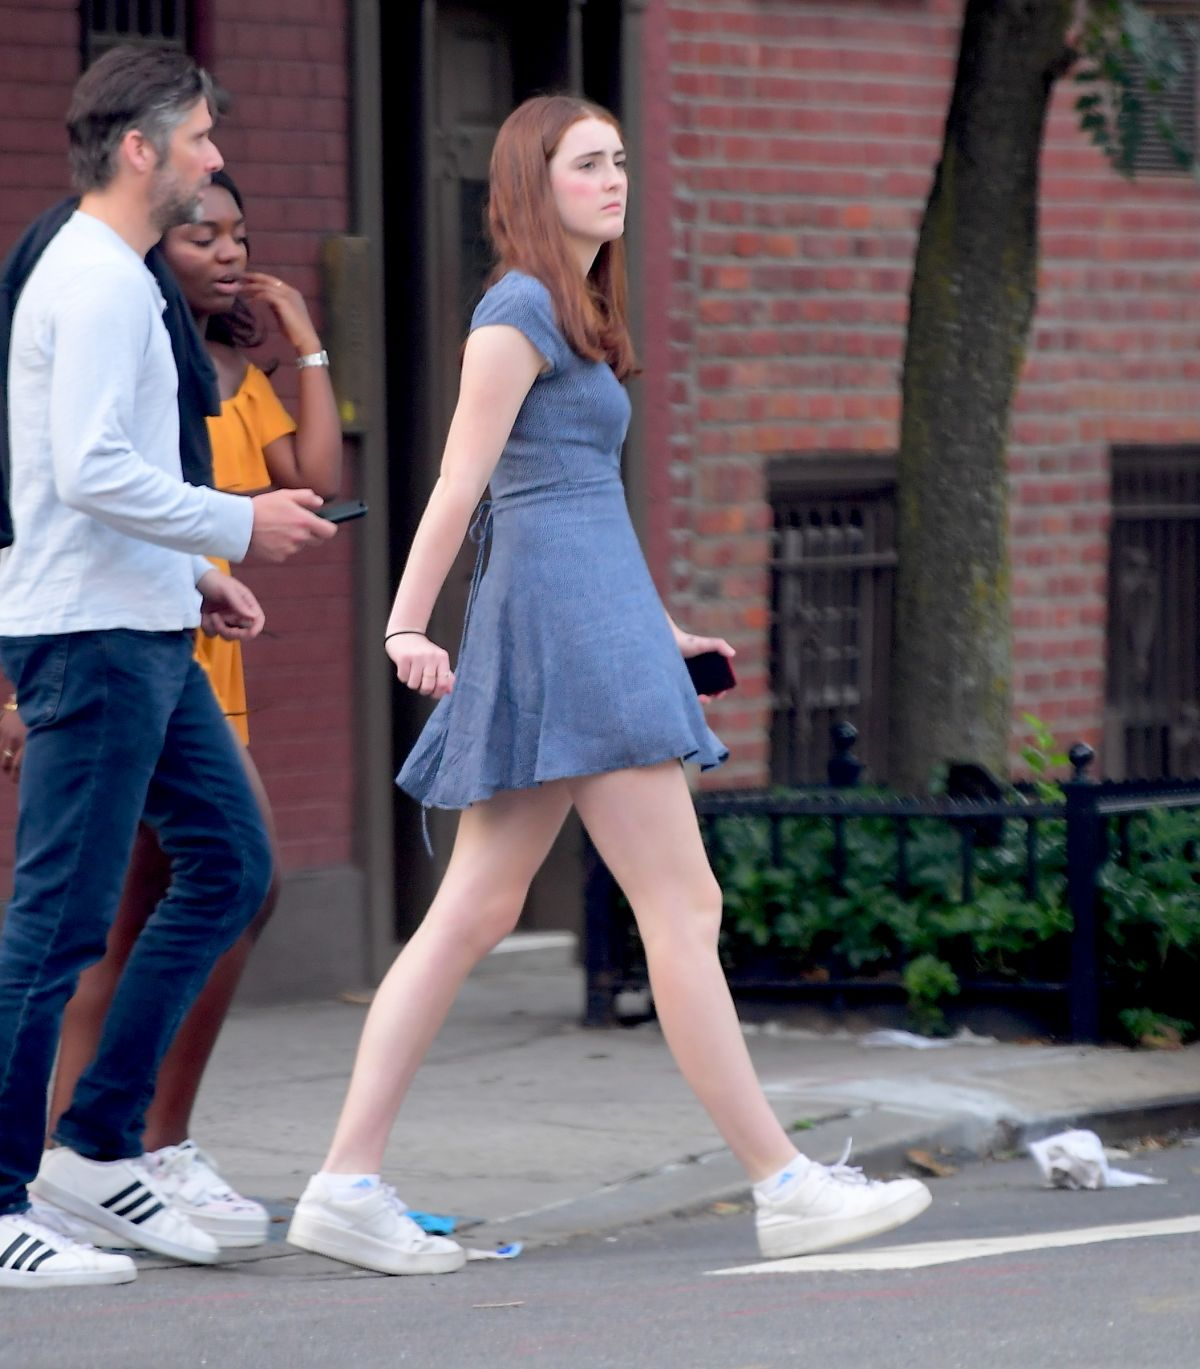 Julianne Moore and Her Daughter Liv Freundlich Out in New York, 06.23.2019 7